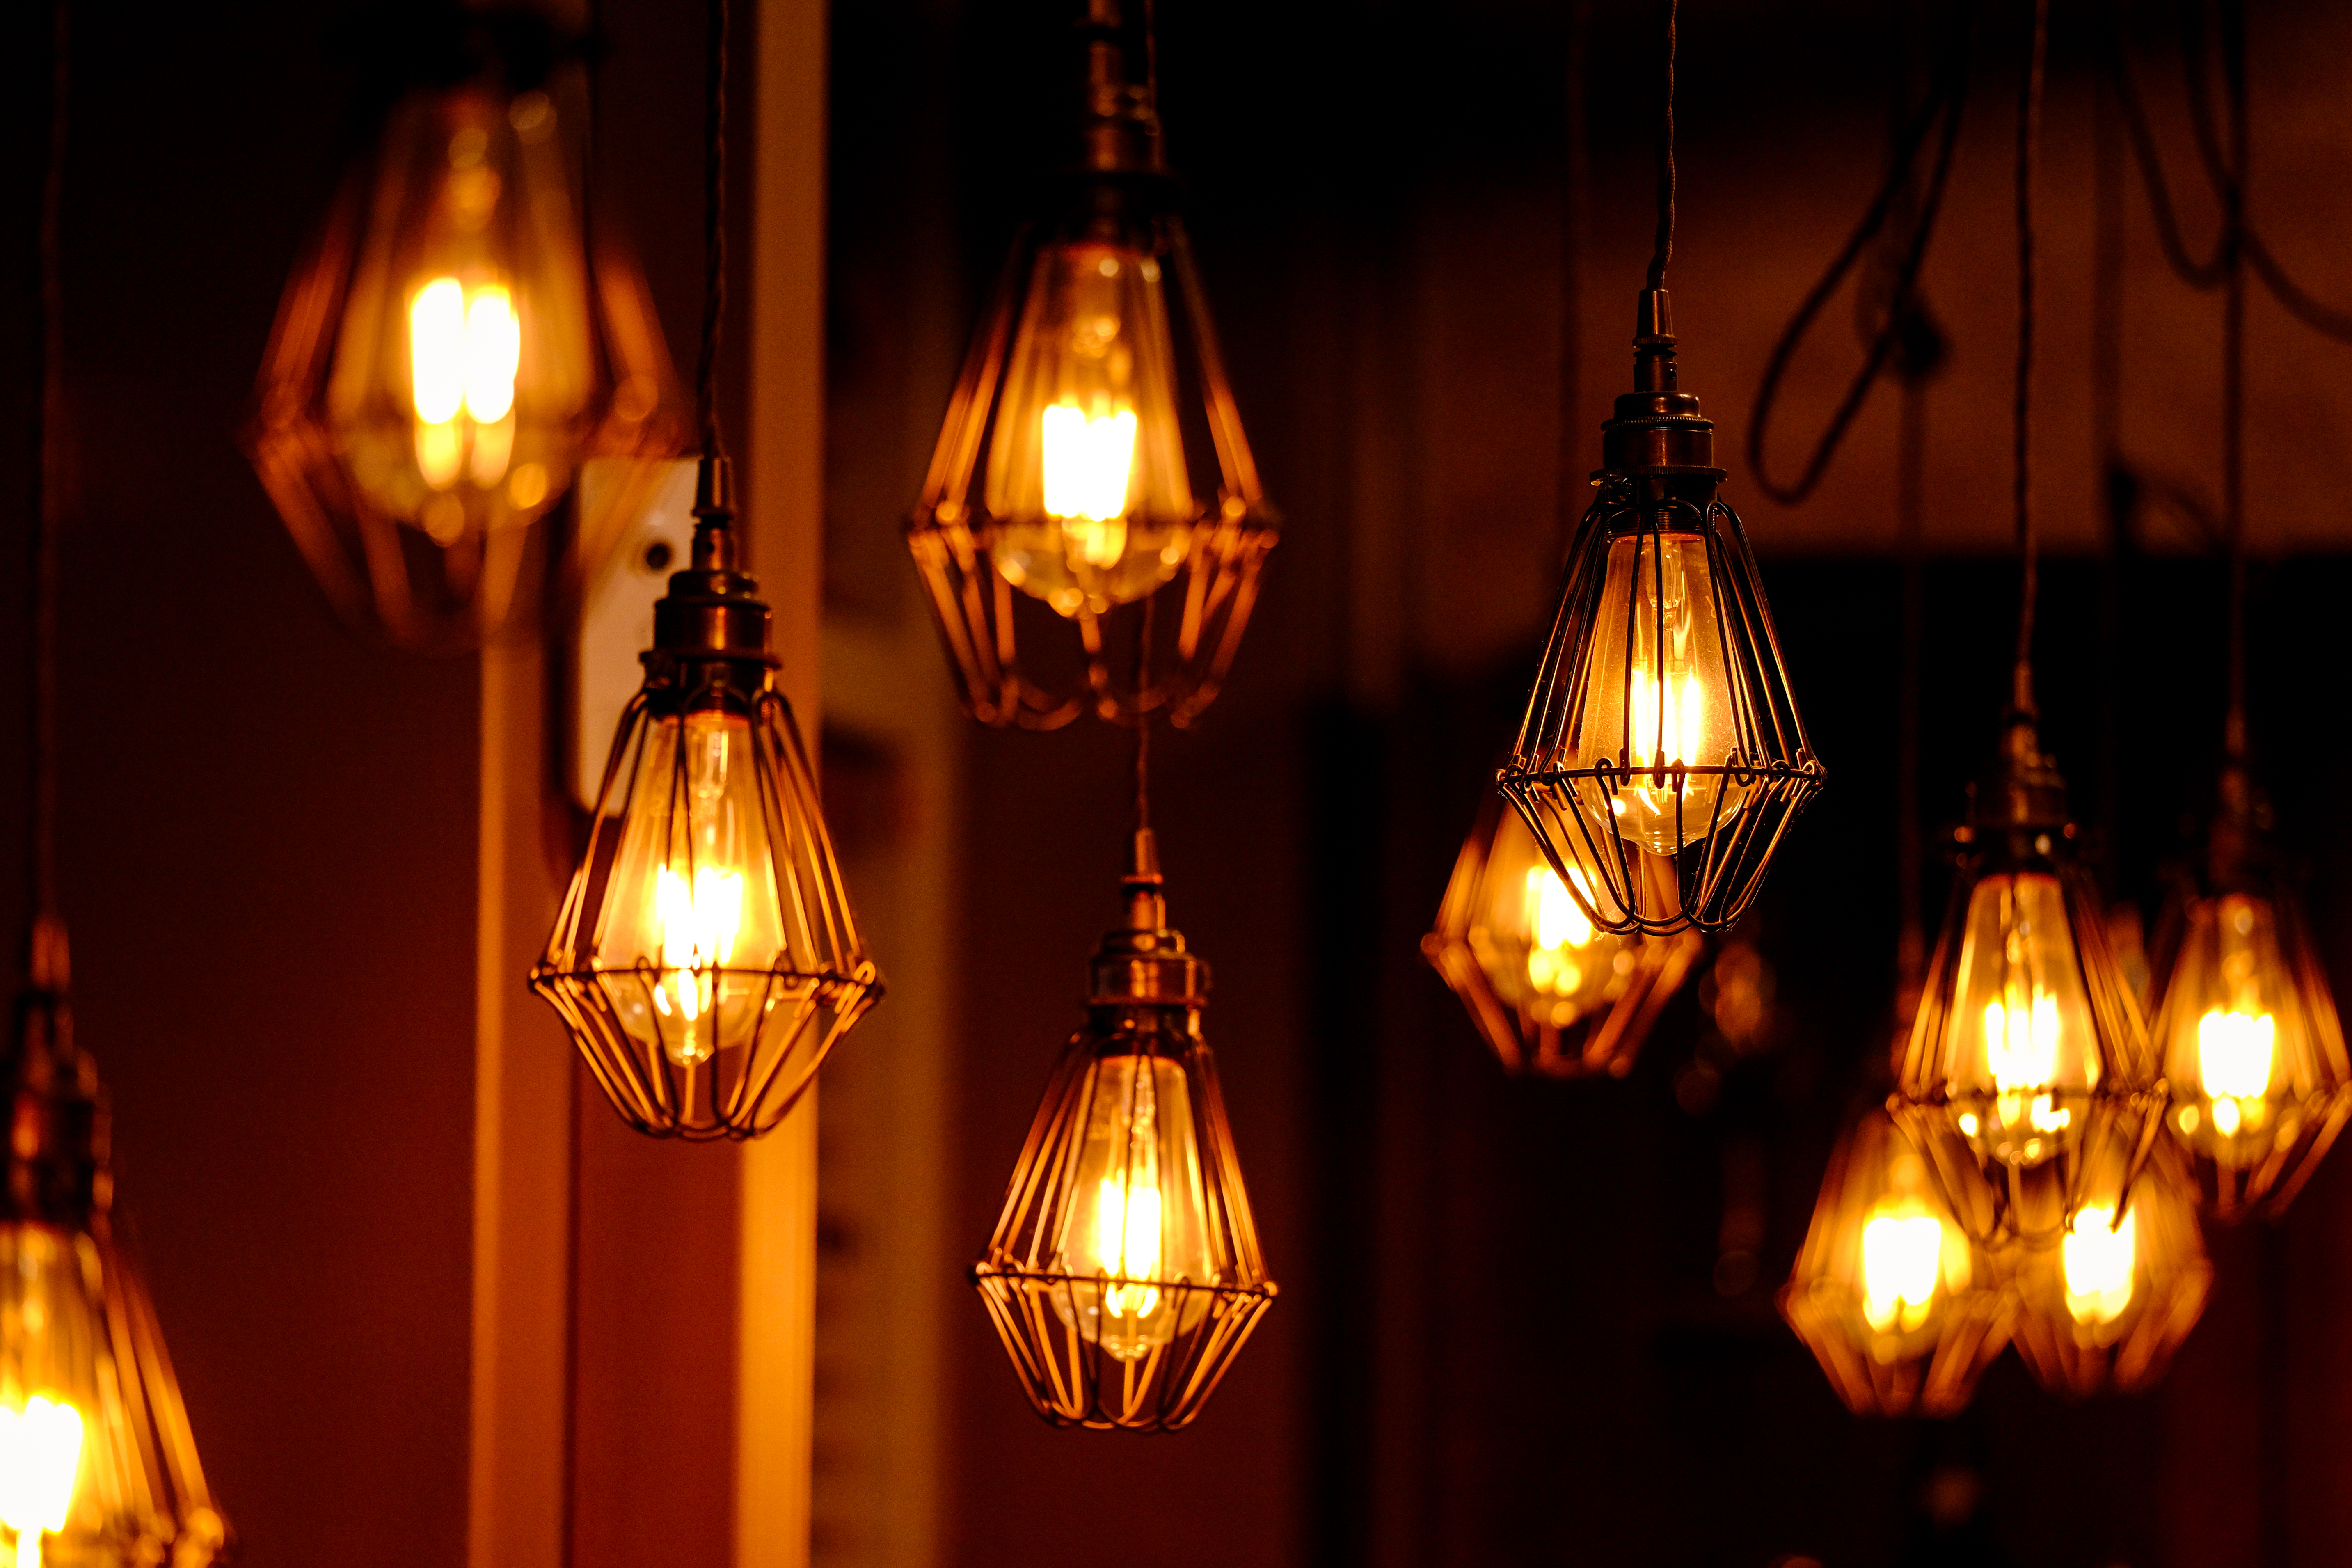 114421 download wallpaper Miscellanea, Miscellaneous, Lanterns, Lights, Light Bulbs, Lighting, Illumination, Shine, Light screensavers and pictures for free